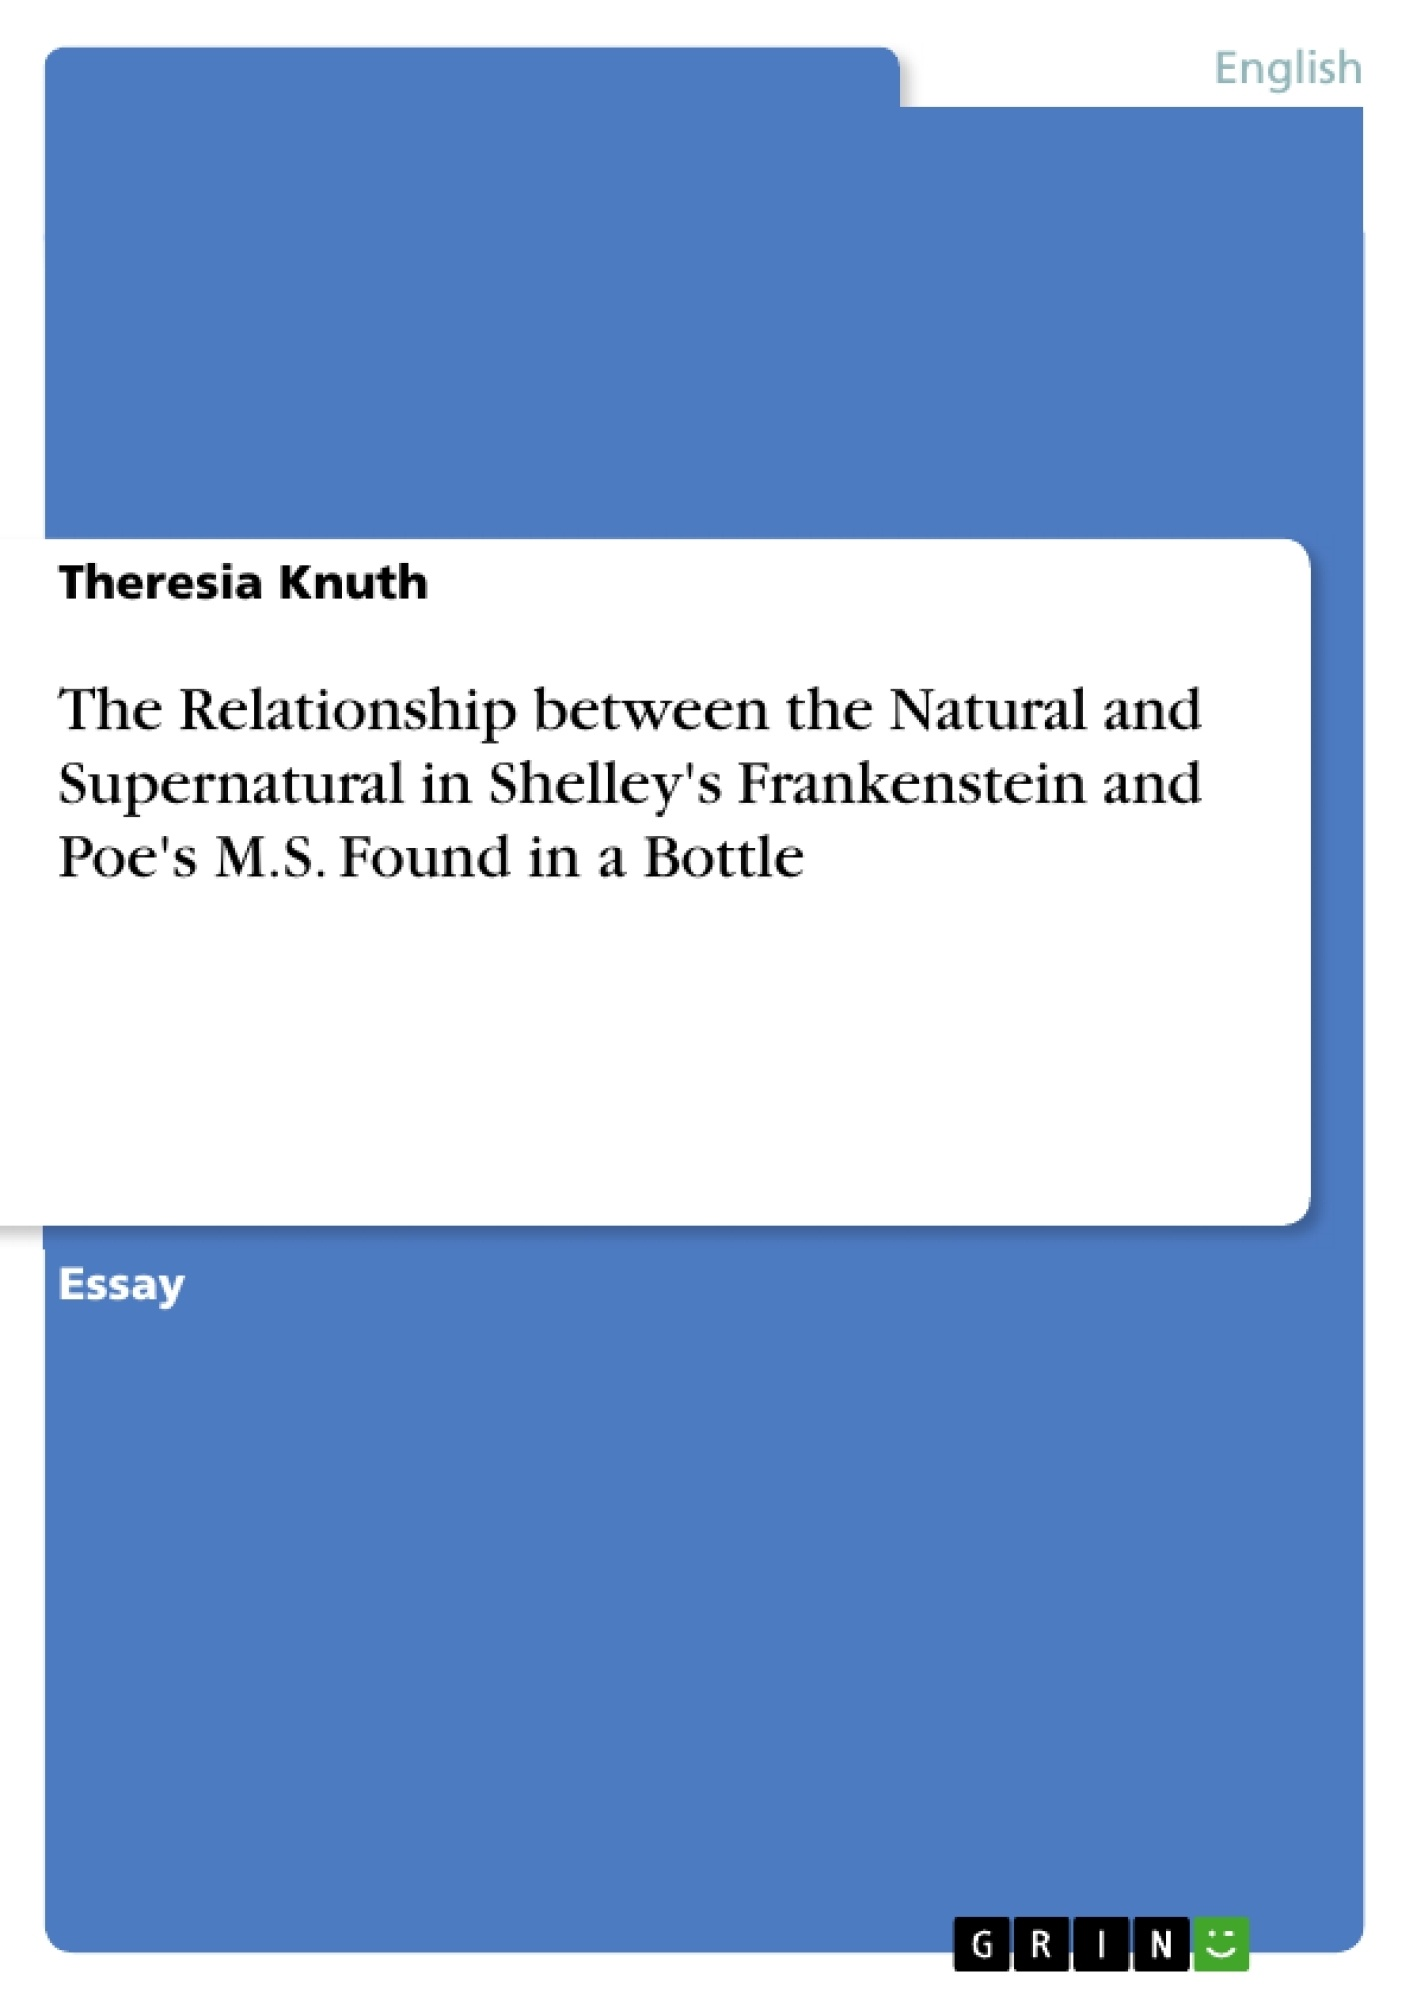 the relationship between the natural and supernatural in shelley s the relationship between the natural and supernatural in shelley s publish your master s thesis bachelor s thesis essay or term paper